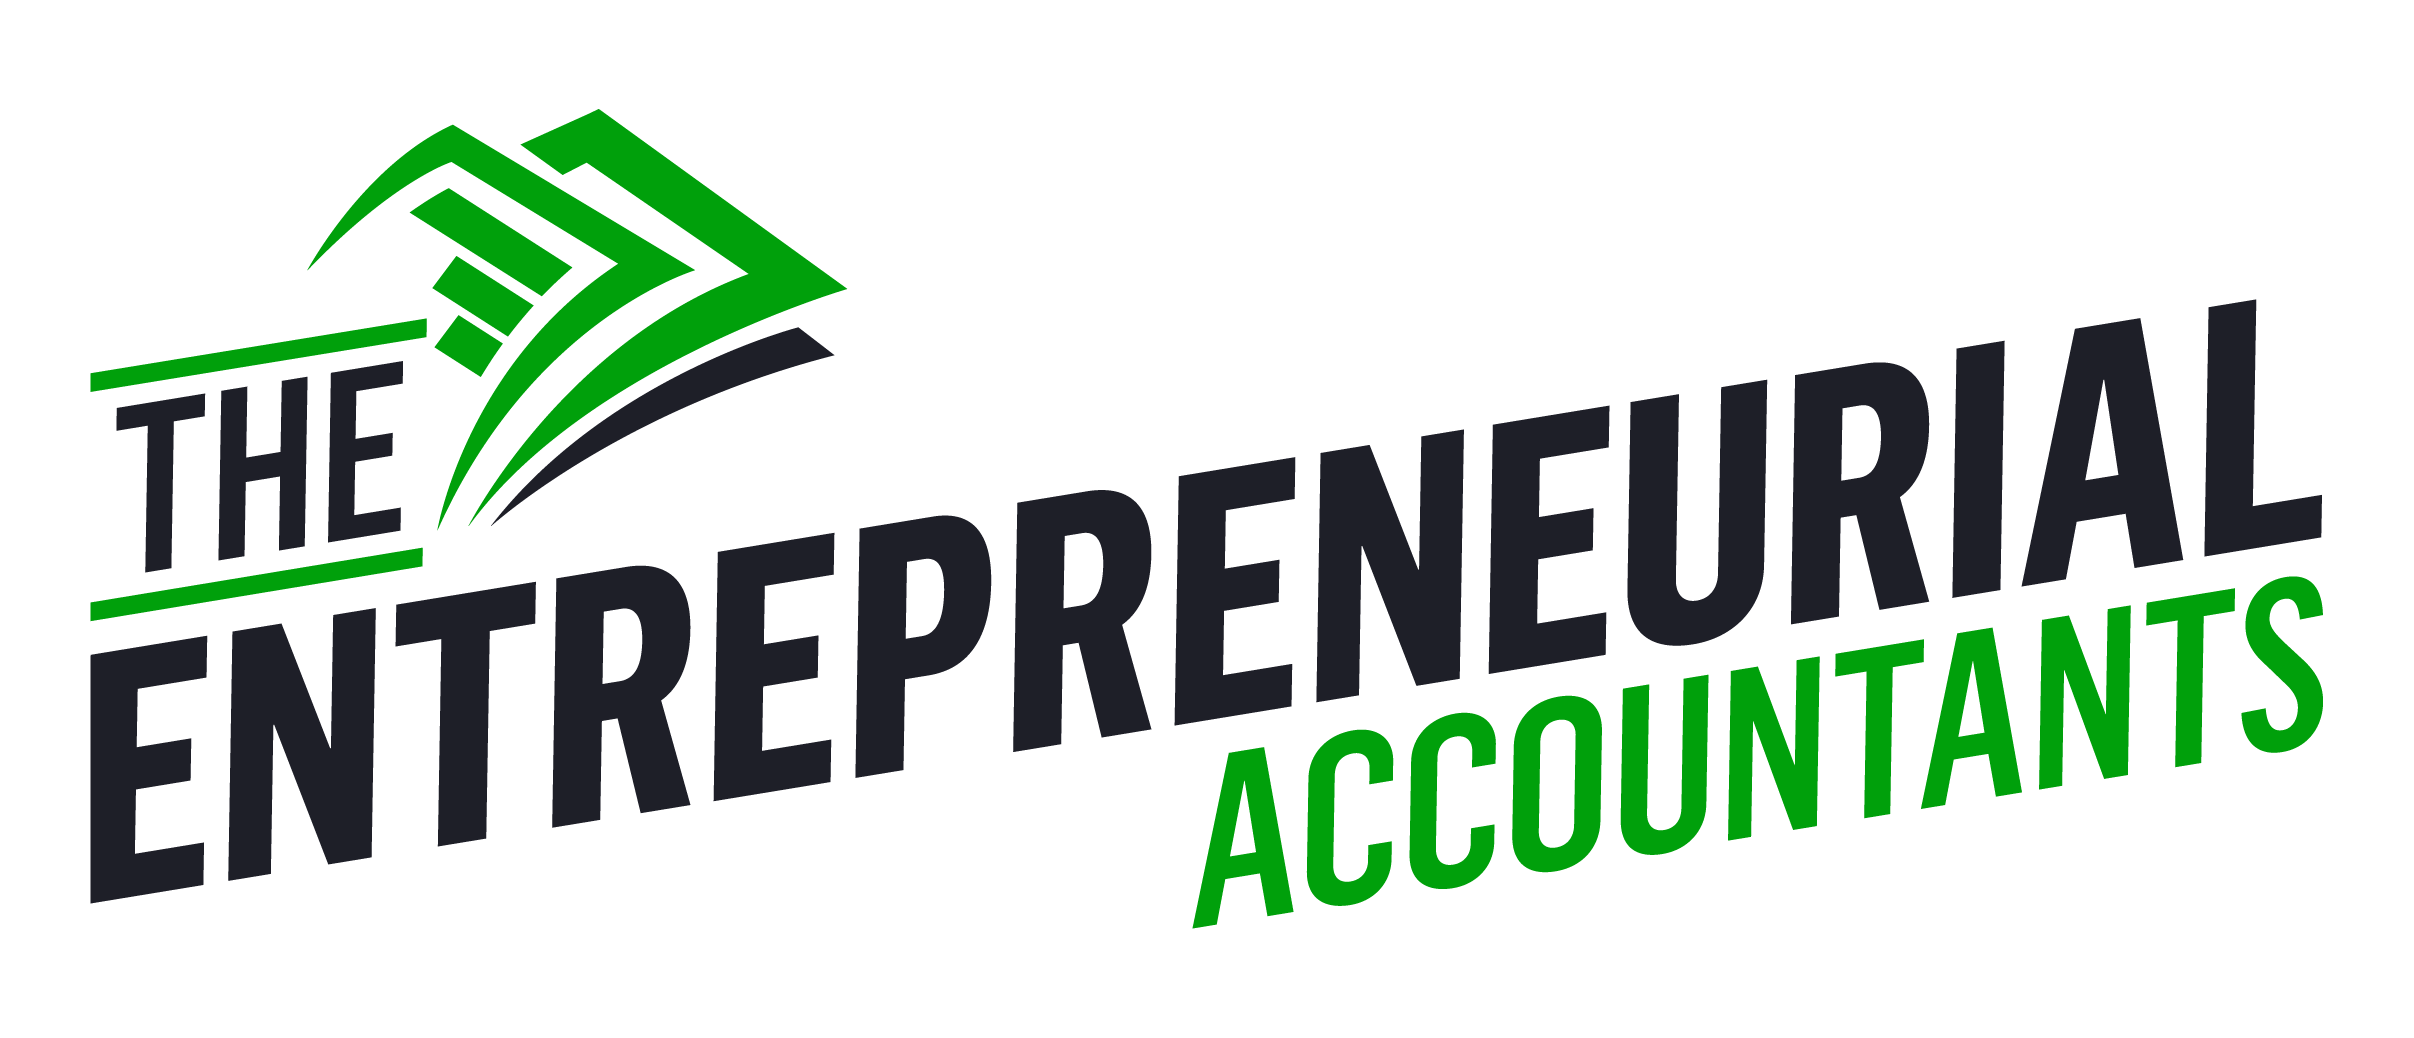 The Entrepreneurial Accountants